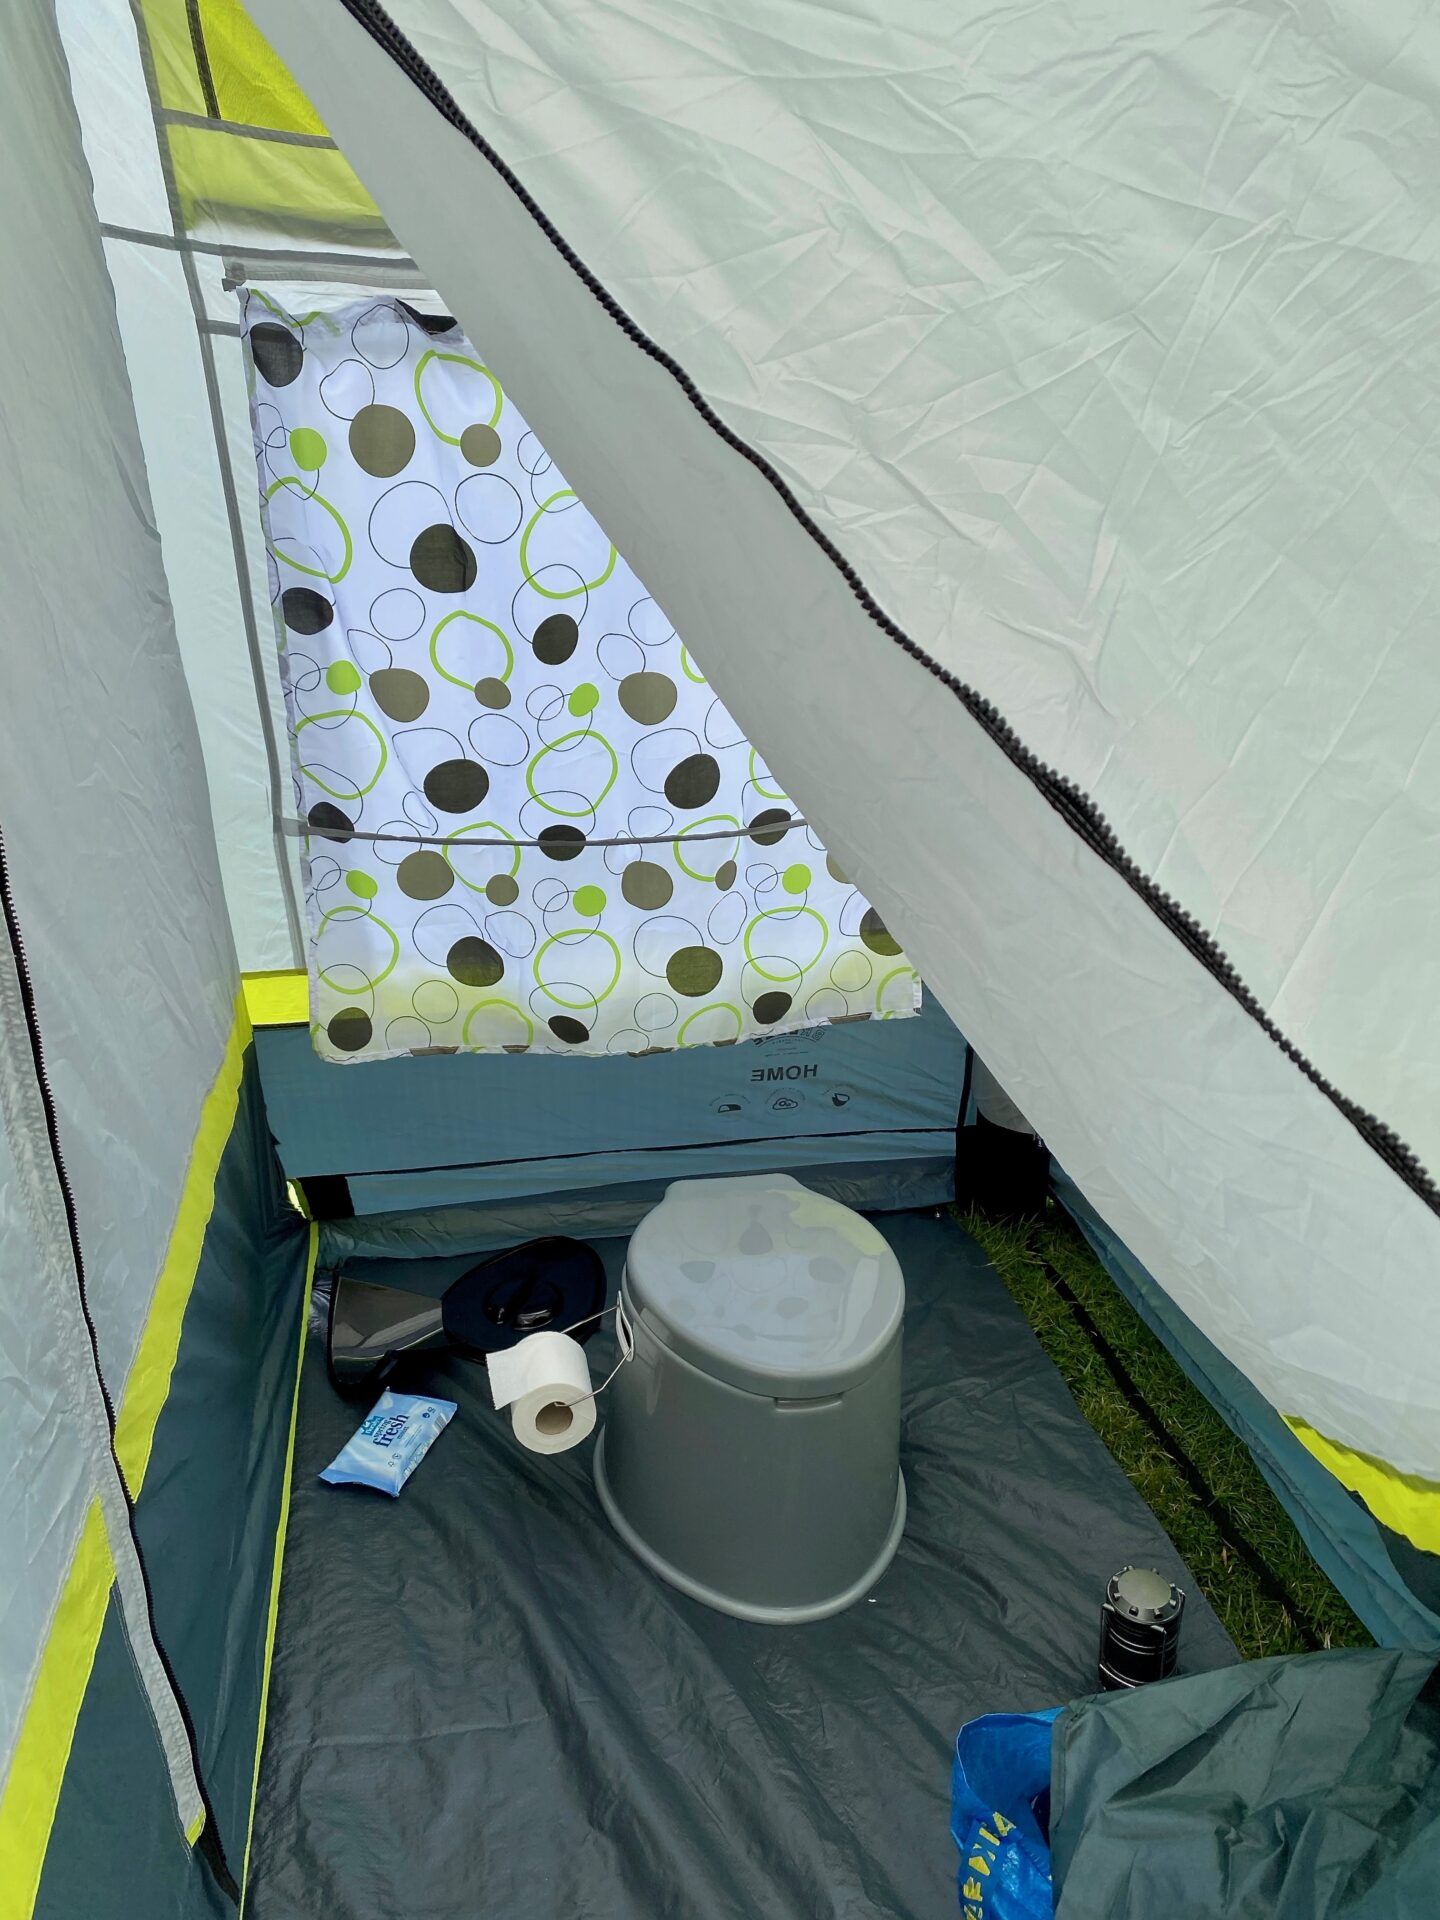 Toilet area of the porch - it's spacious with a toilet, toiler roll, wipes and a lamp set up.